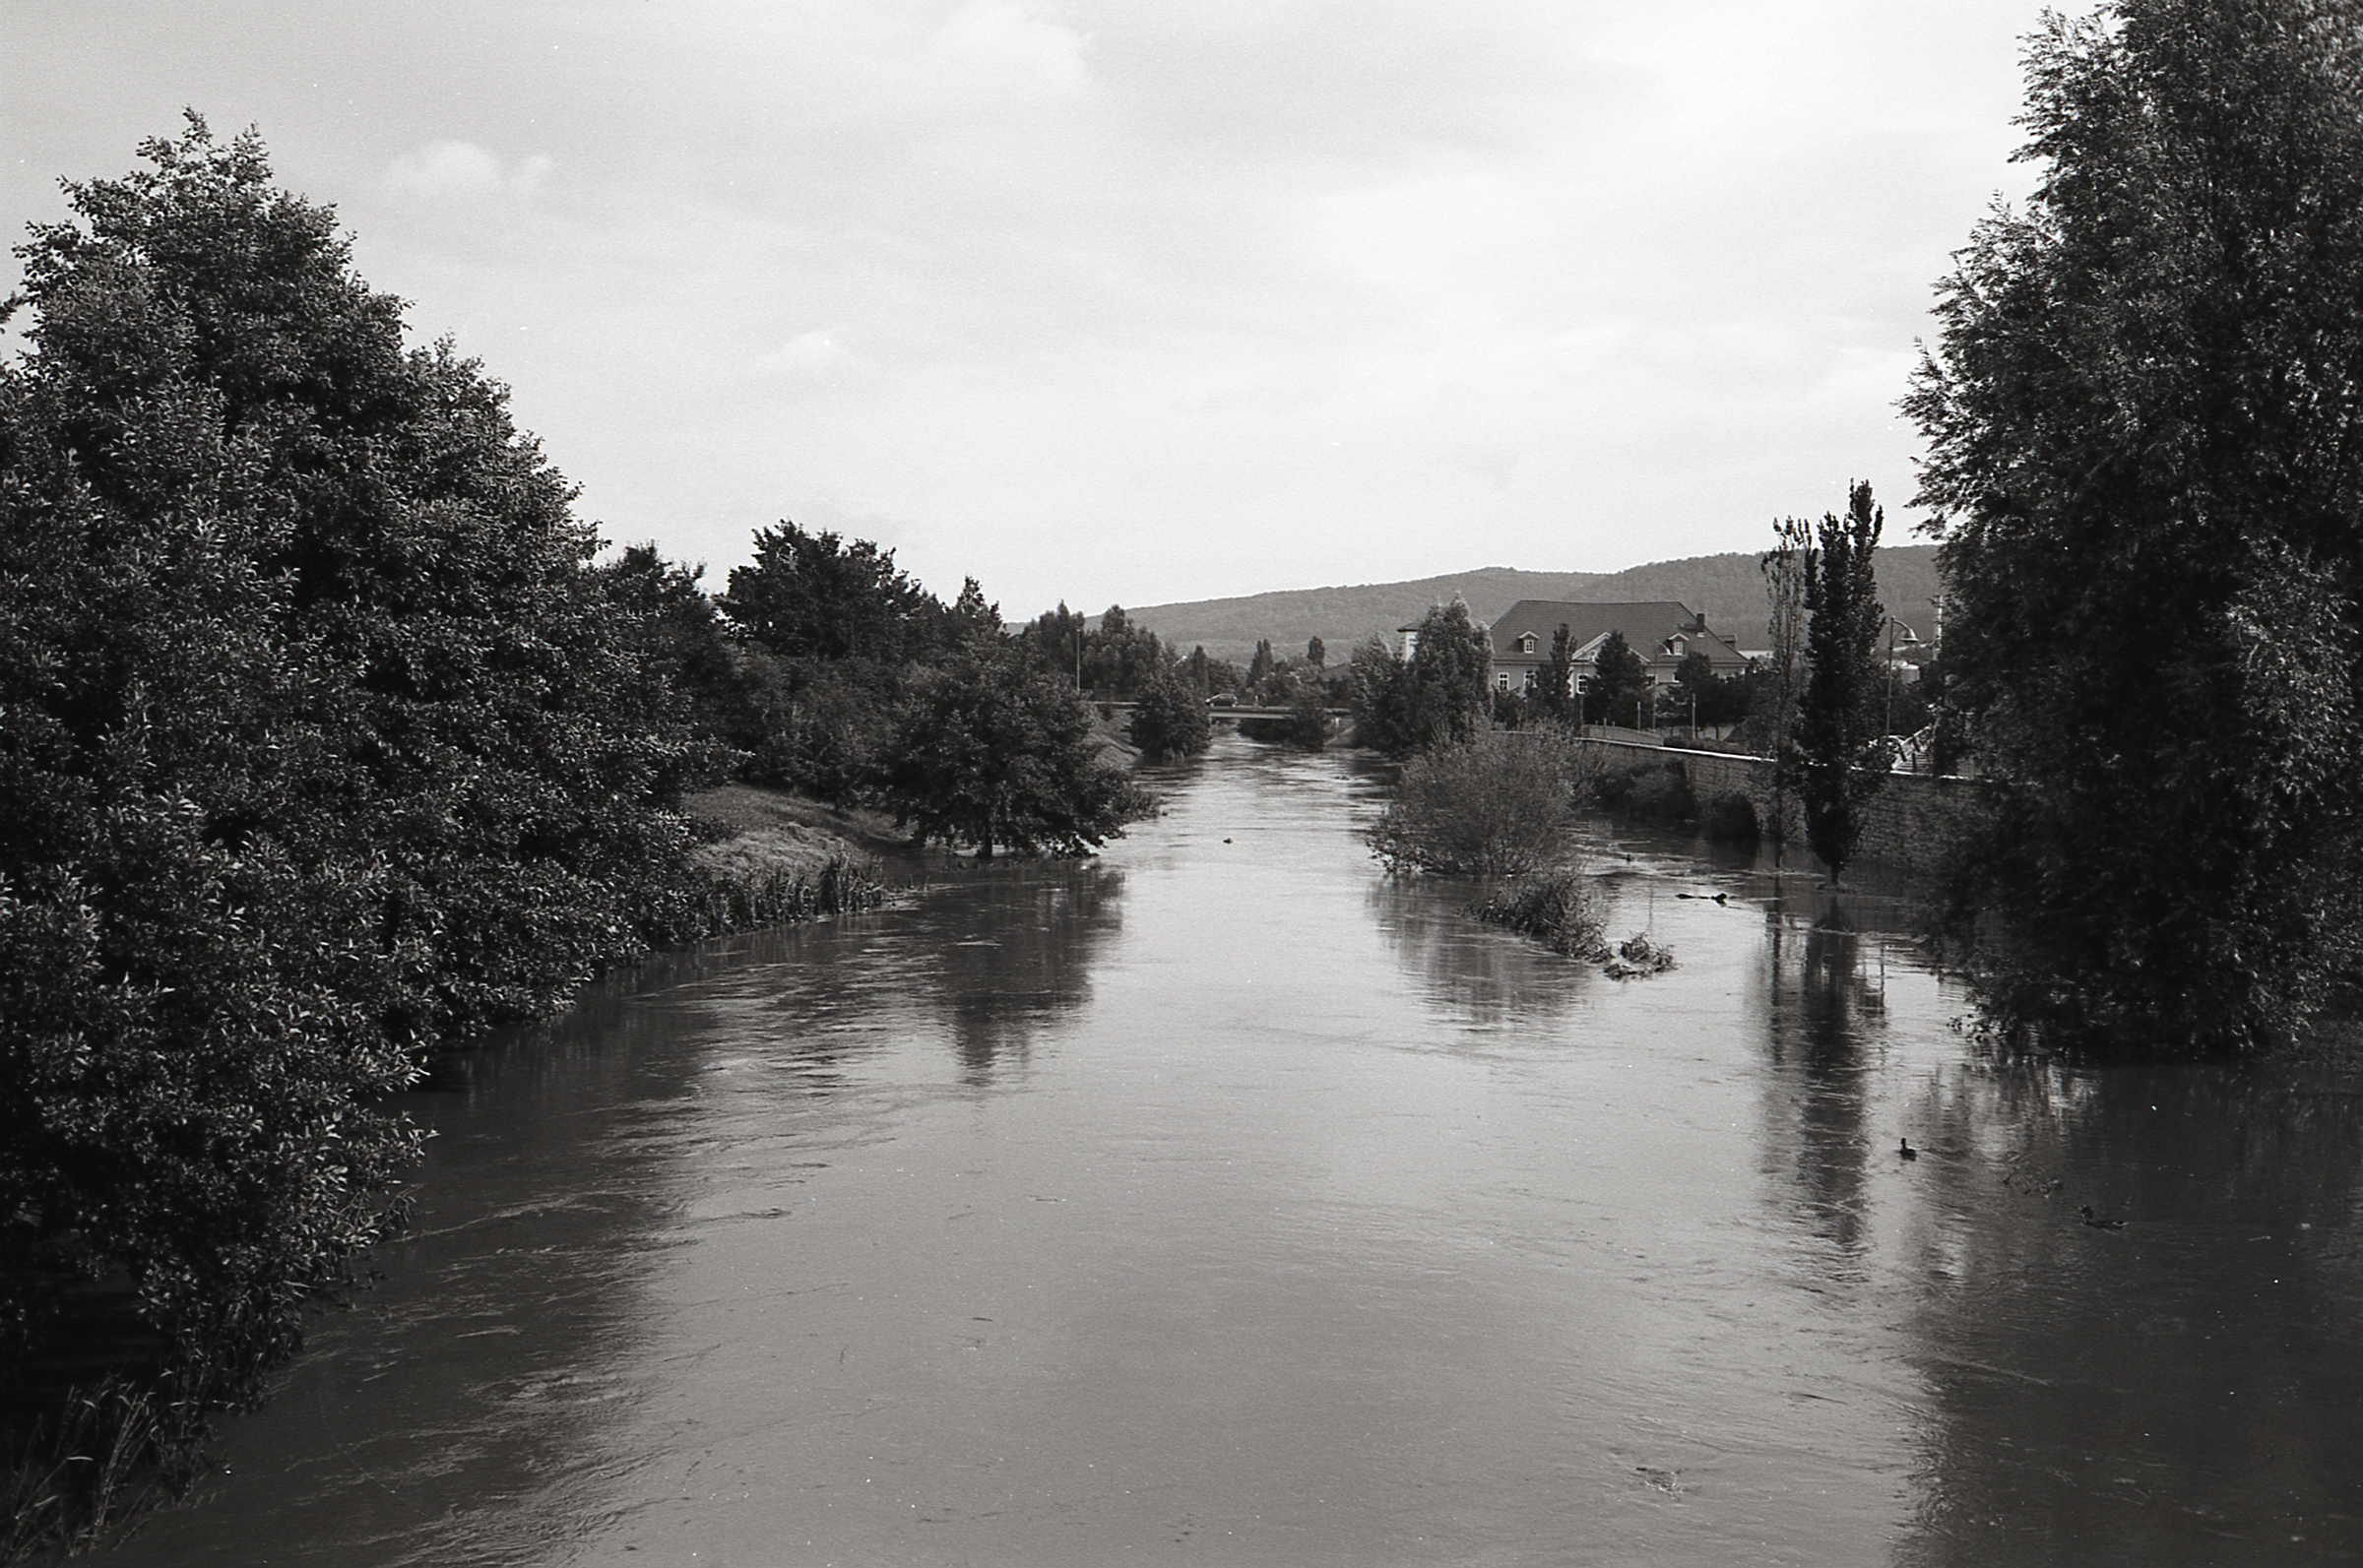 Photo by Alexander Lechner   Shot with a Zeiss Ikon ZM with Voigtlander Nokton 40mm f/1.4 lens at 80 ISO  Developed with D-23 1+0 (2.5 g Metol and 33 g Na-sulfit filled up to 330 ml with water) for 7 min at 20°C - first 30 s constant movement then 4 inversions every full min  Scanned with Epson V550 at 4800 dpi, absolutely non altered by any software